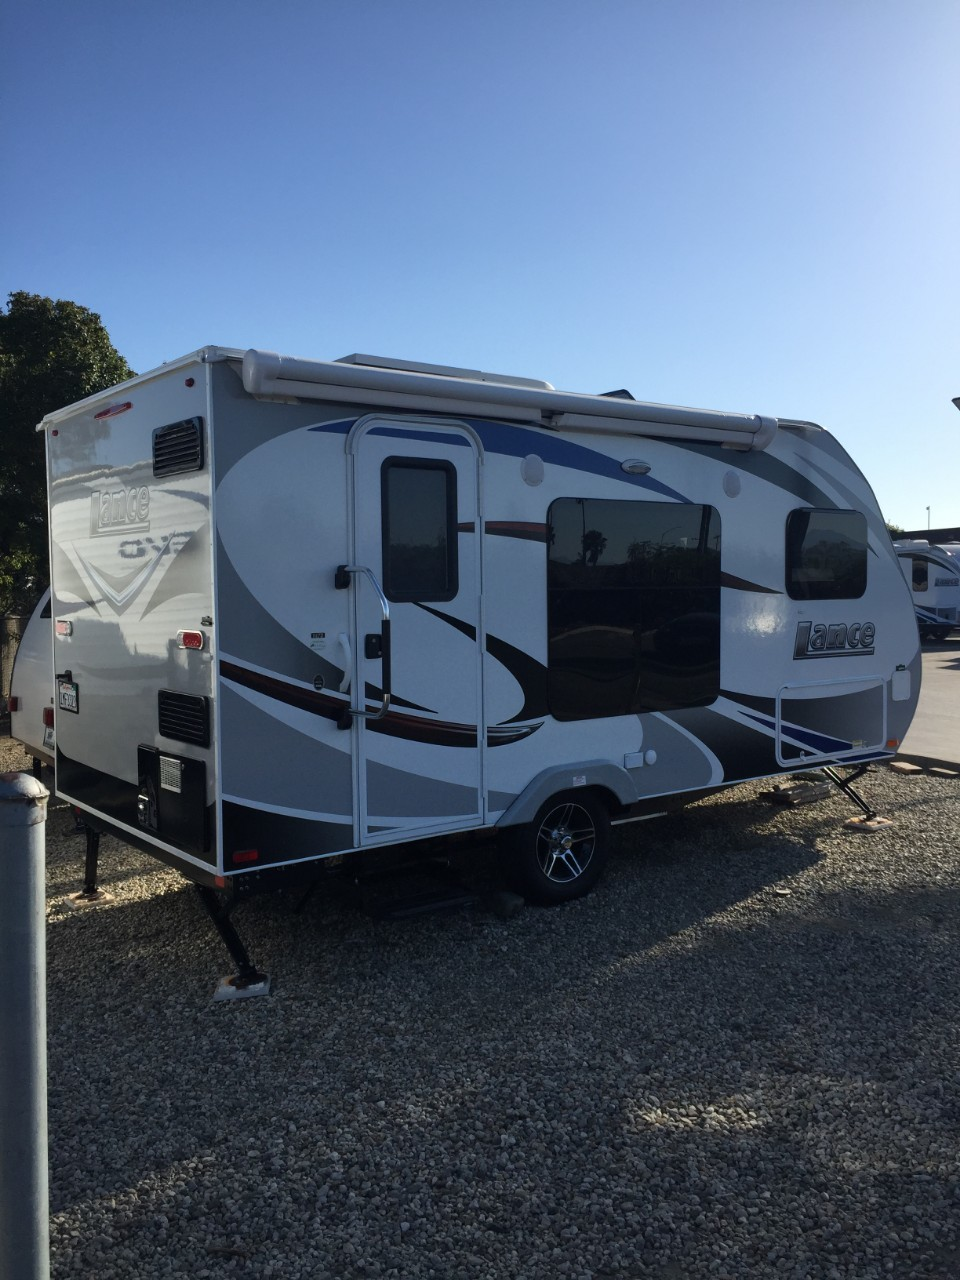 1475 For Sale - Lance Travel Trailers - RV Trader